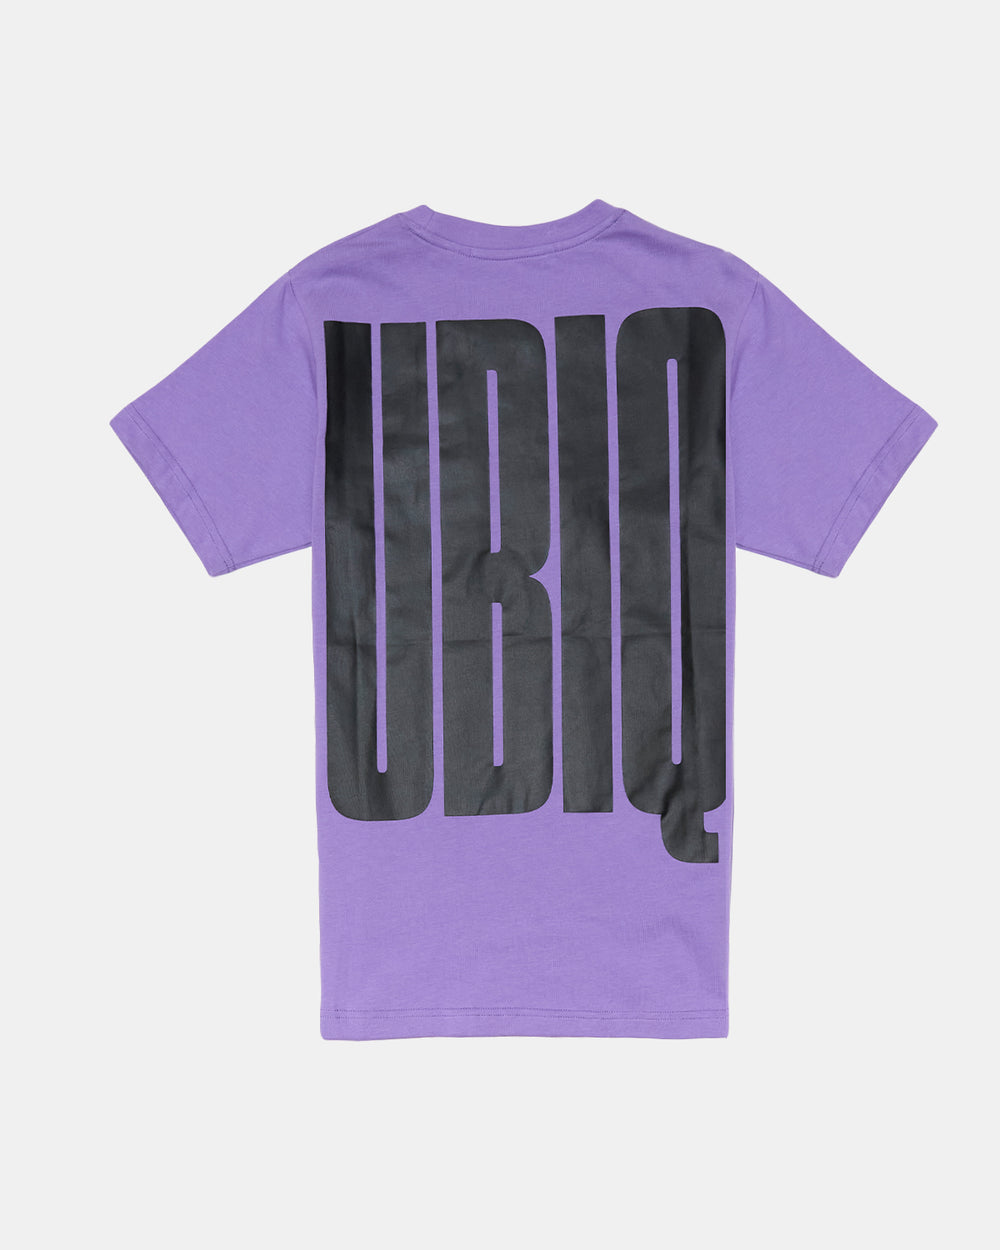 UBIQ - Stretched Type Tee (Lavender)